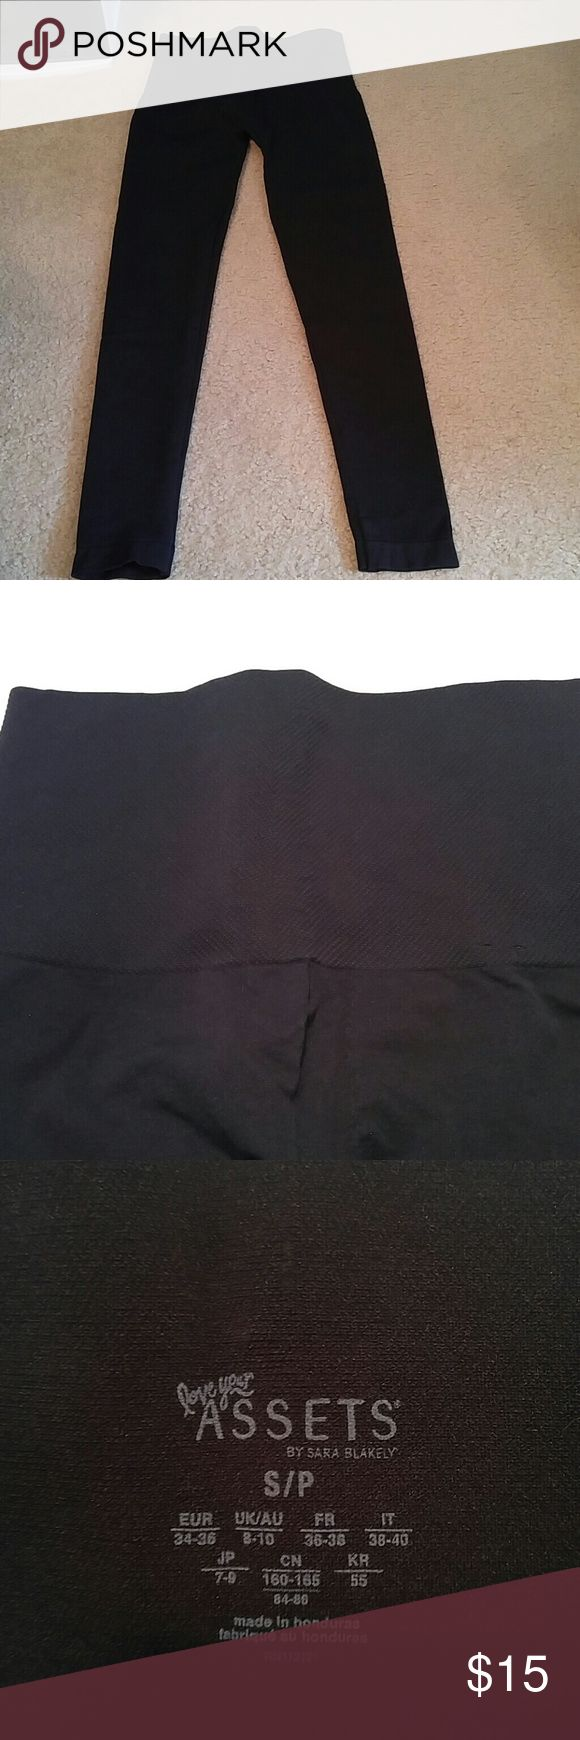 Love Your Assets Spanx Black Leggings Small Love Your Assets Spanx Black Leggings. Size Small. Tummy control panel. Like New condition! SPANX Intimates & Sleepwear Shapewear